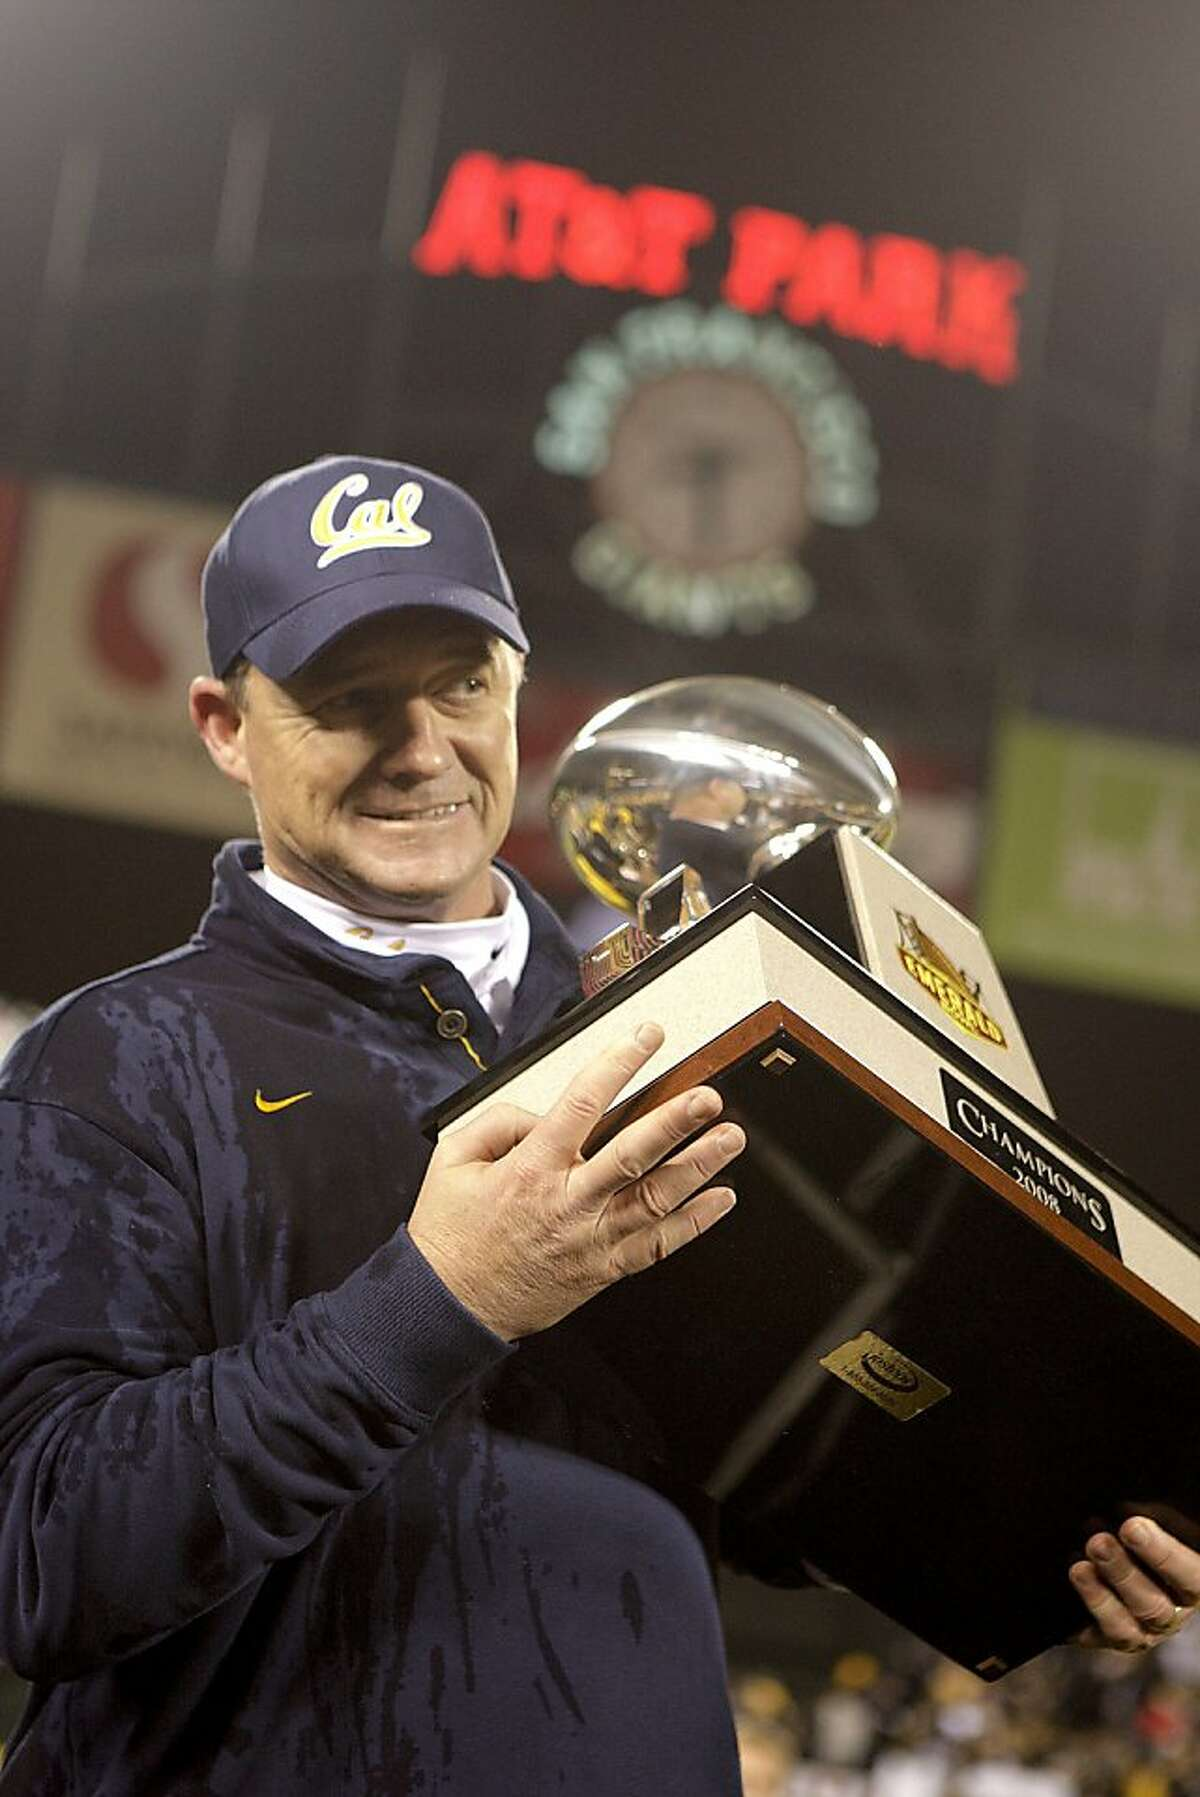 Jeff Tedford takes the Emerald Bowl trophy with him as he walks back to the locker room . on Saturday Dec 27, 2008 in San Francisco , Calif